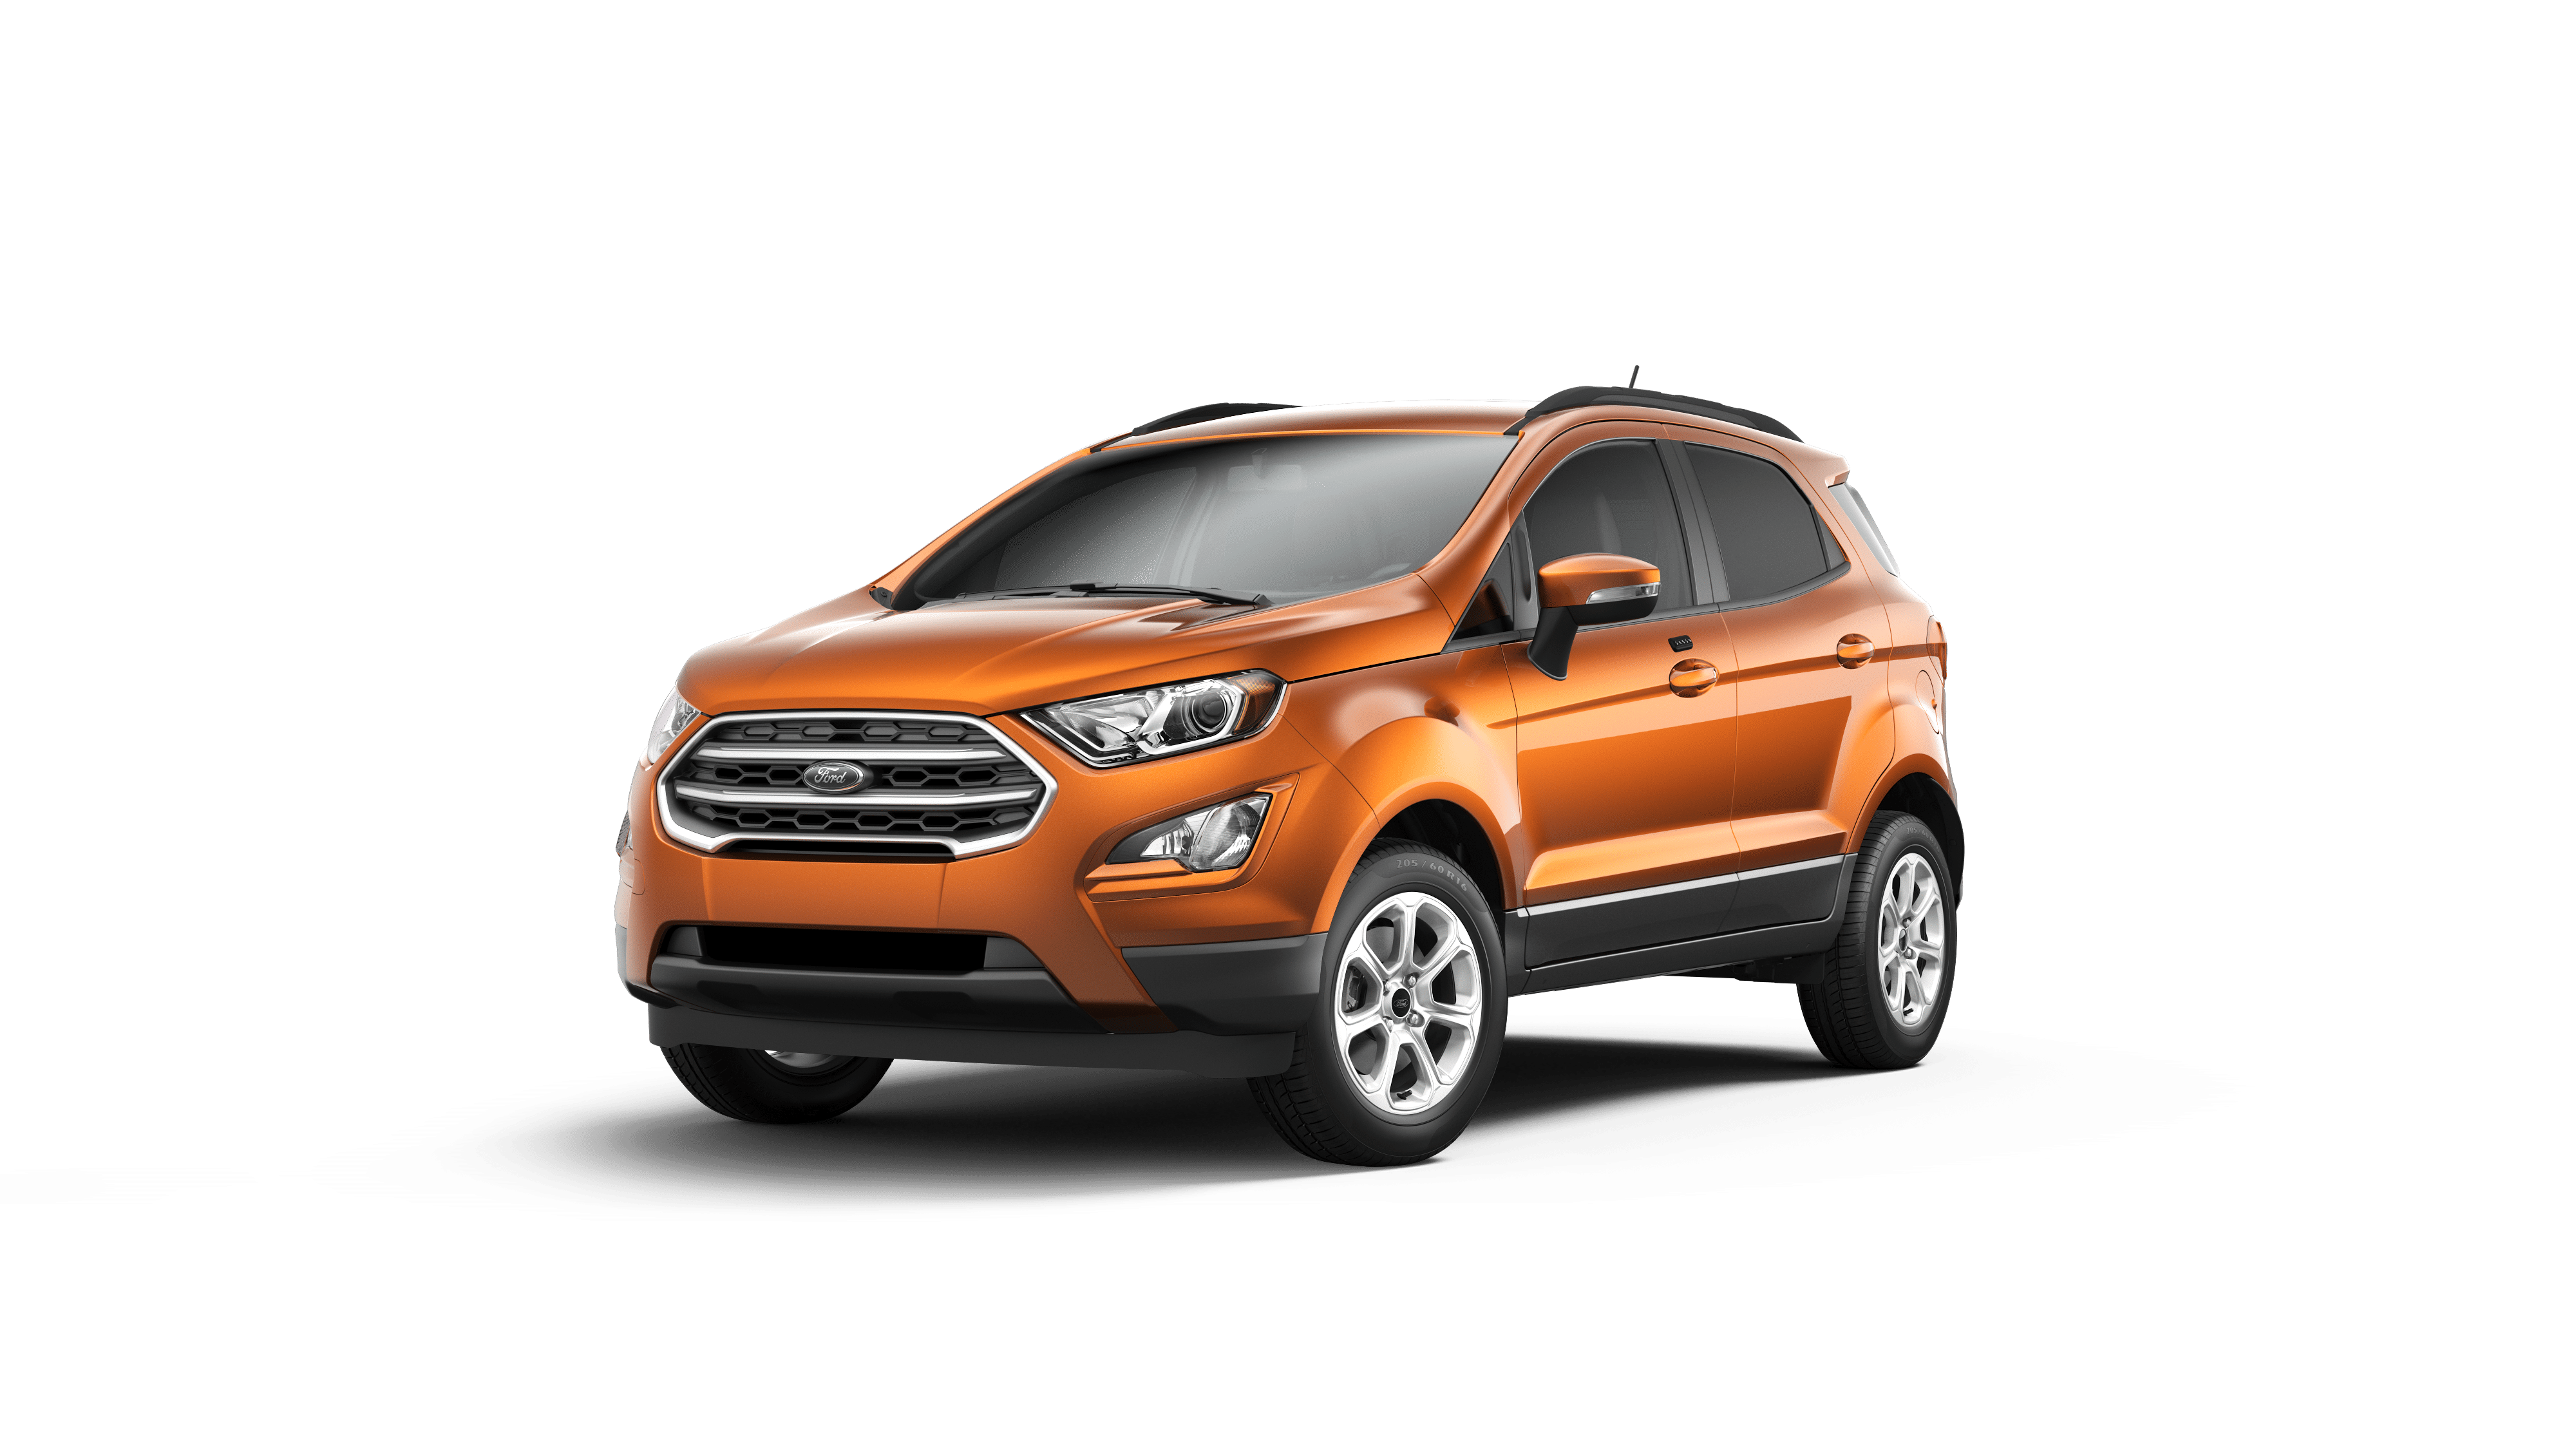 2018 Ford Ecosport For Sale In Eunice Maj3p1te4jc220494 Perry Pitre Ford Co Inc